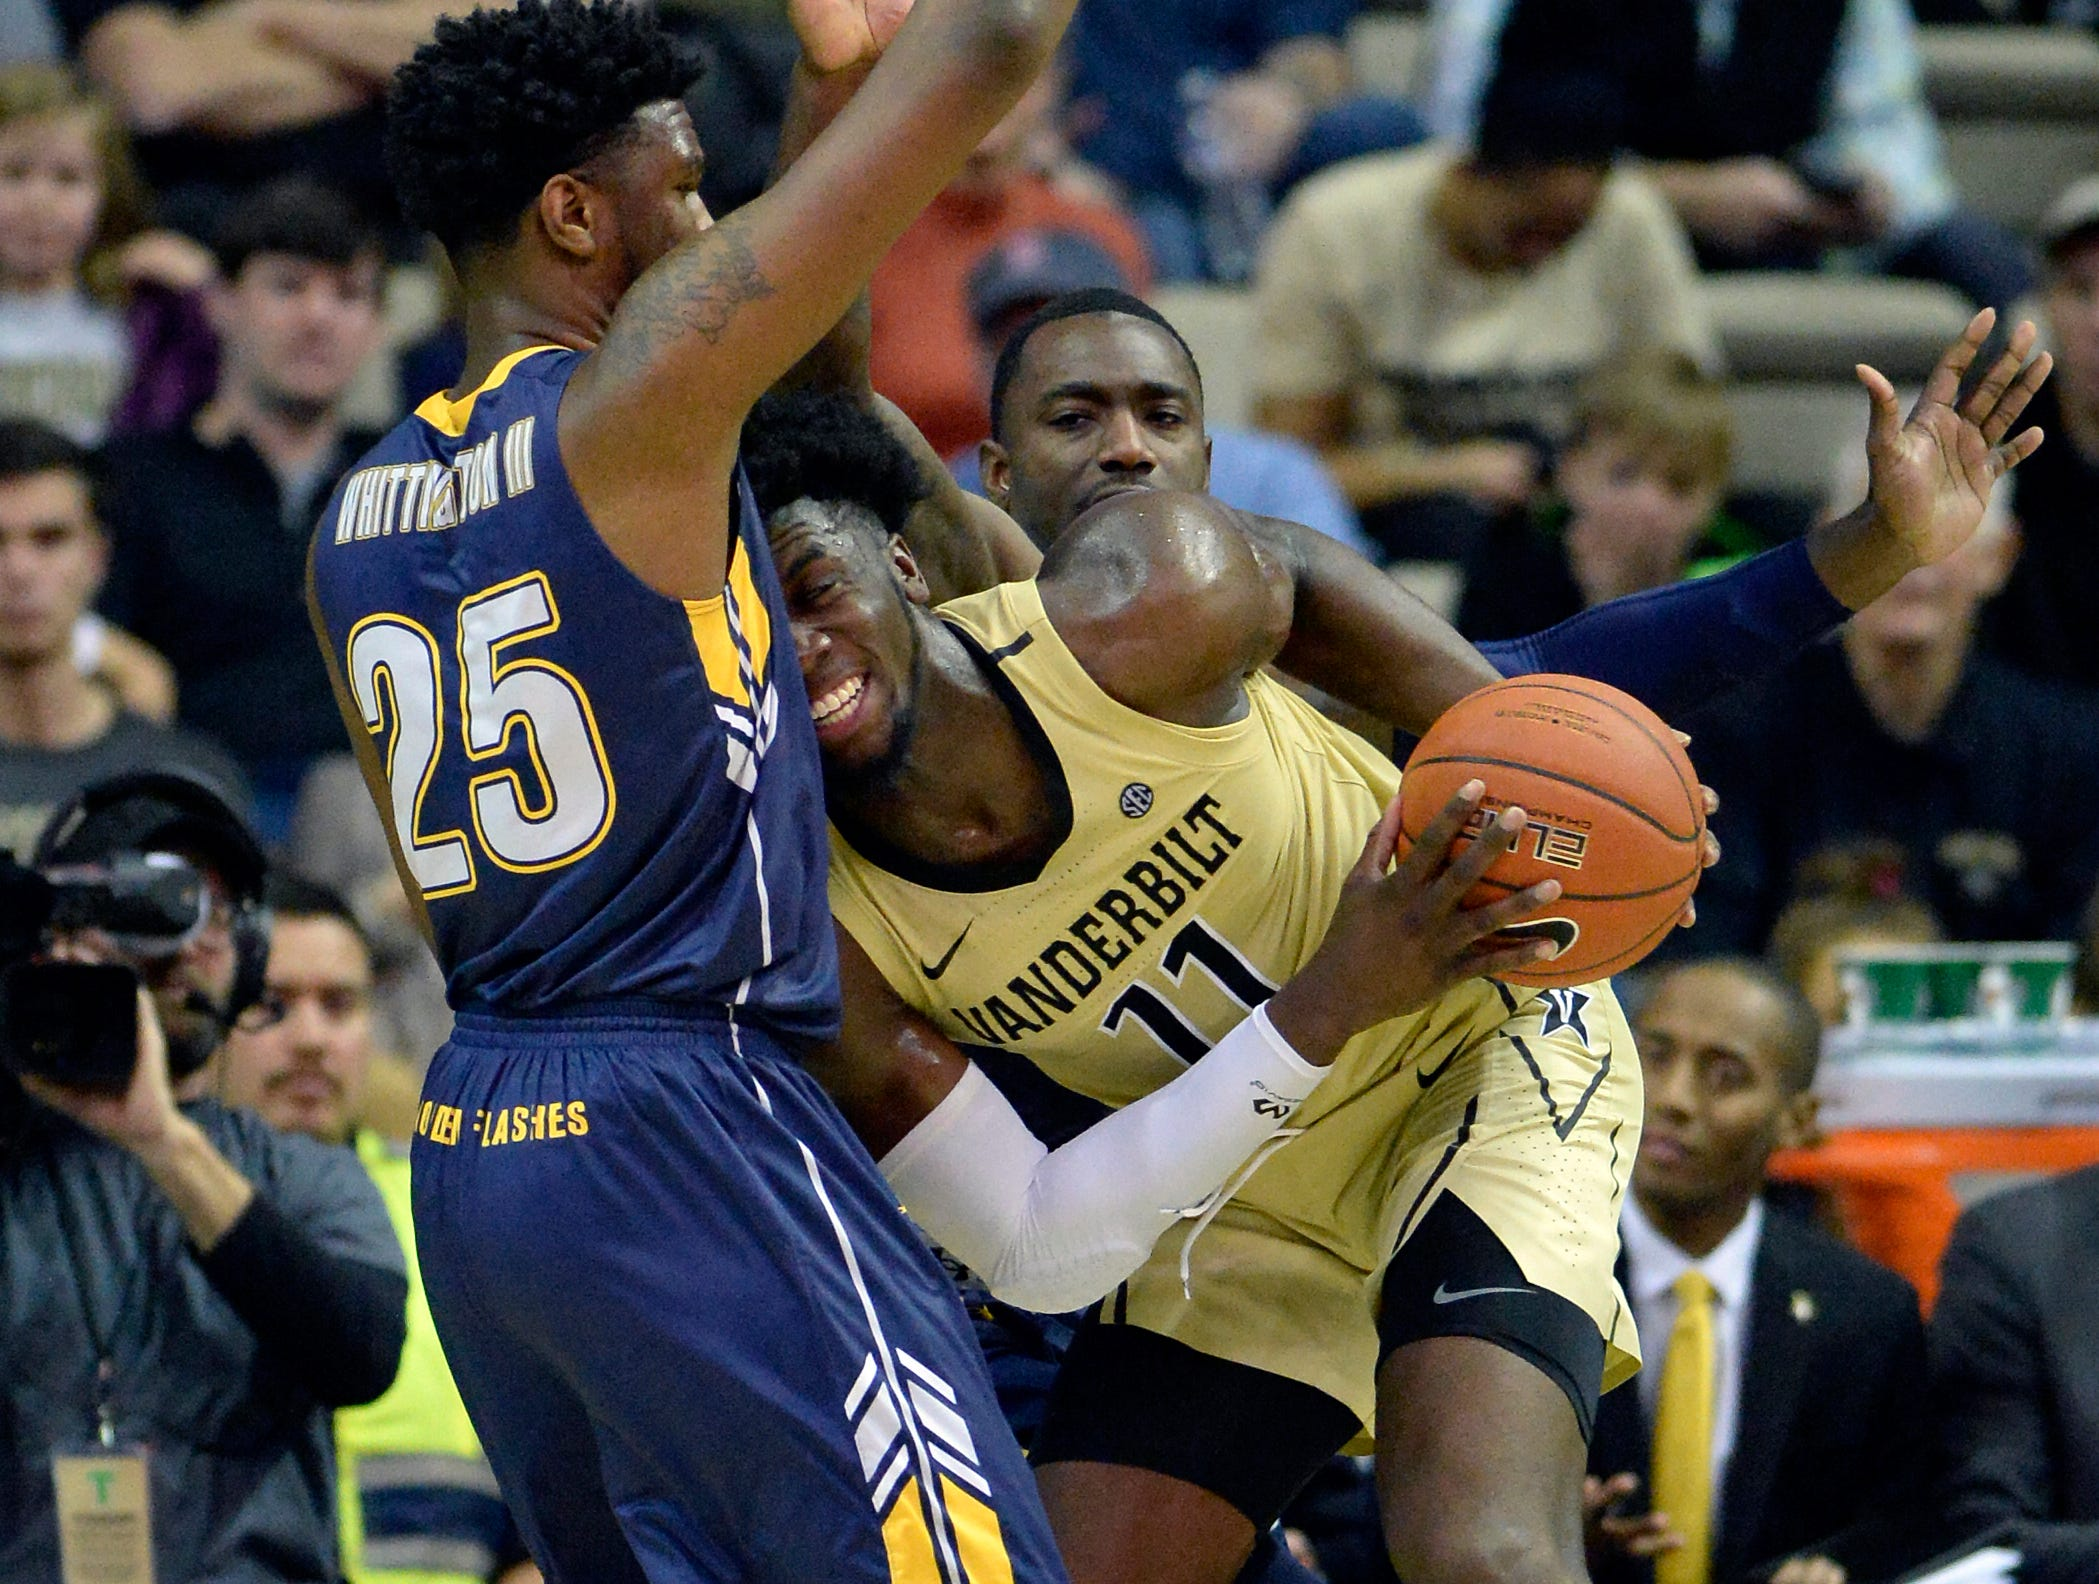 Vanderbilt forward Simisola Shittu (11) tries to drive to the basket against Kent State forward Philip Whittington (25) during the second half of an NCAA college basketball game Friday, Nov. 23, 2018, in Nashville, Tenn. Kent State won 77-75.